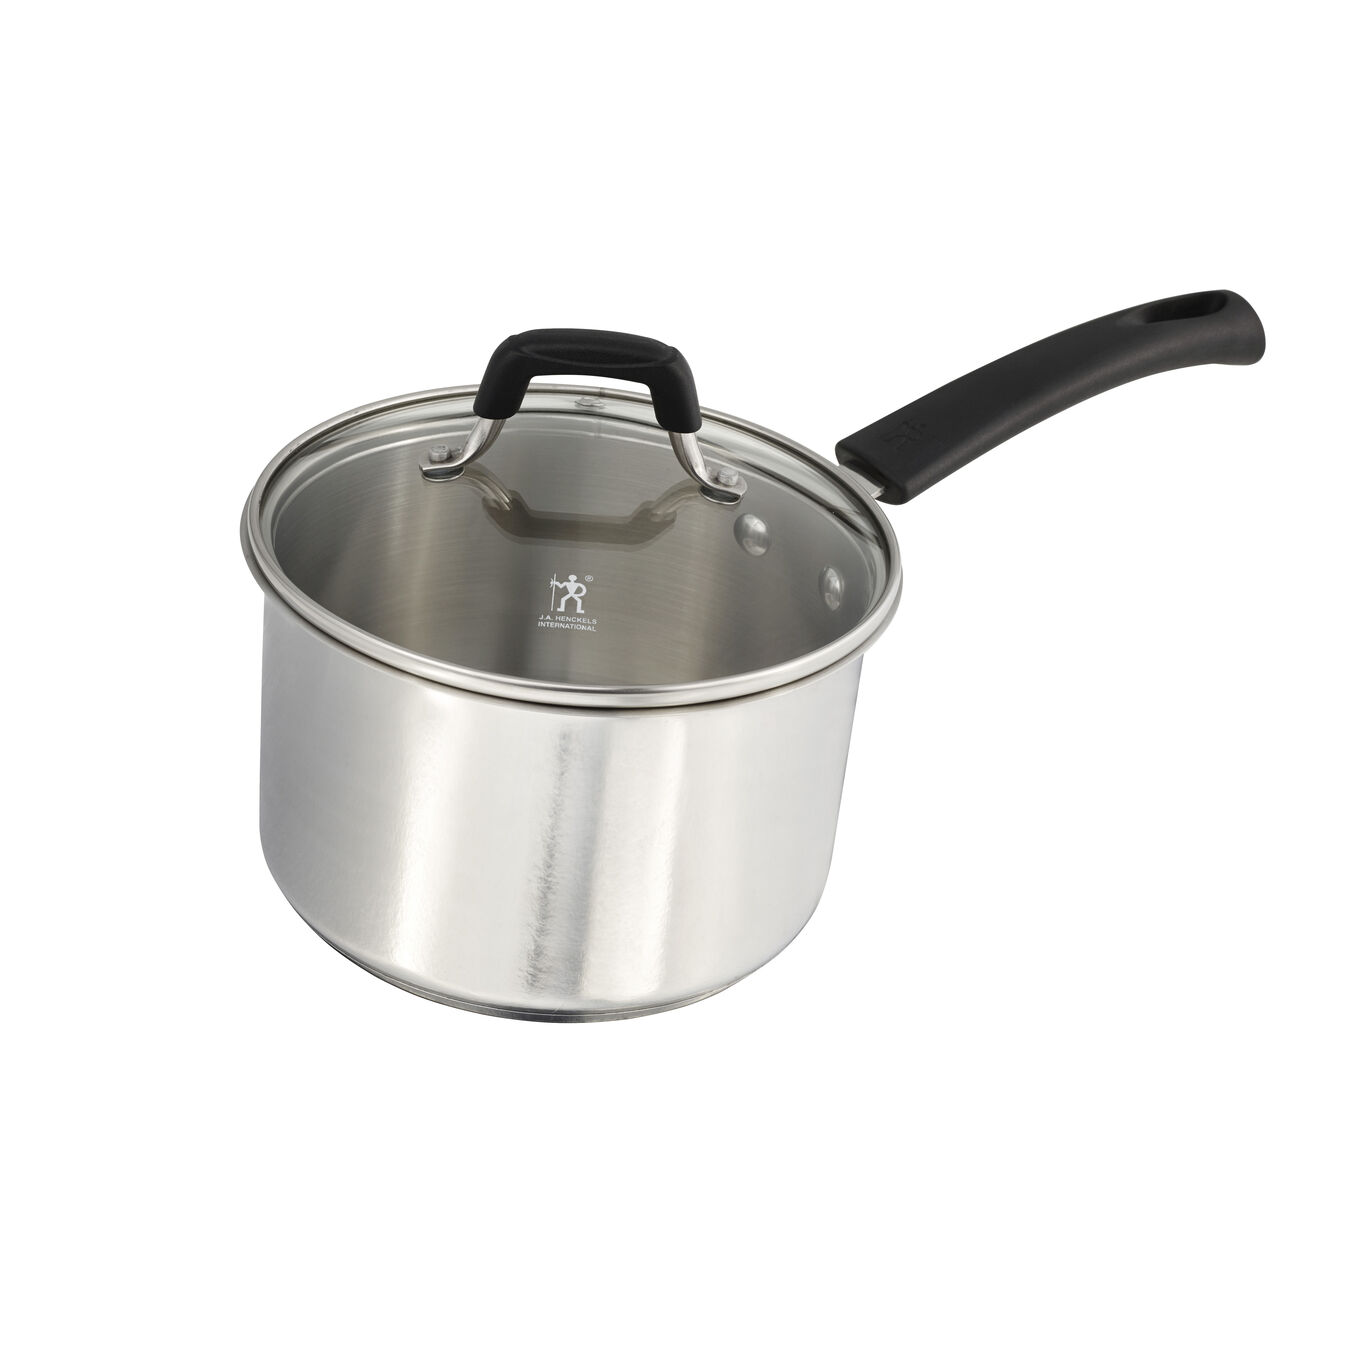 10 Piece Stainless steel Cookware set,,large 4